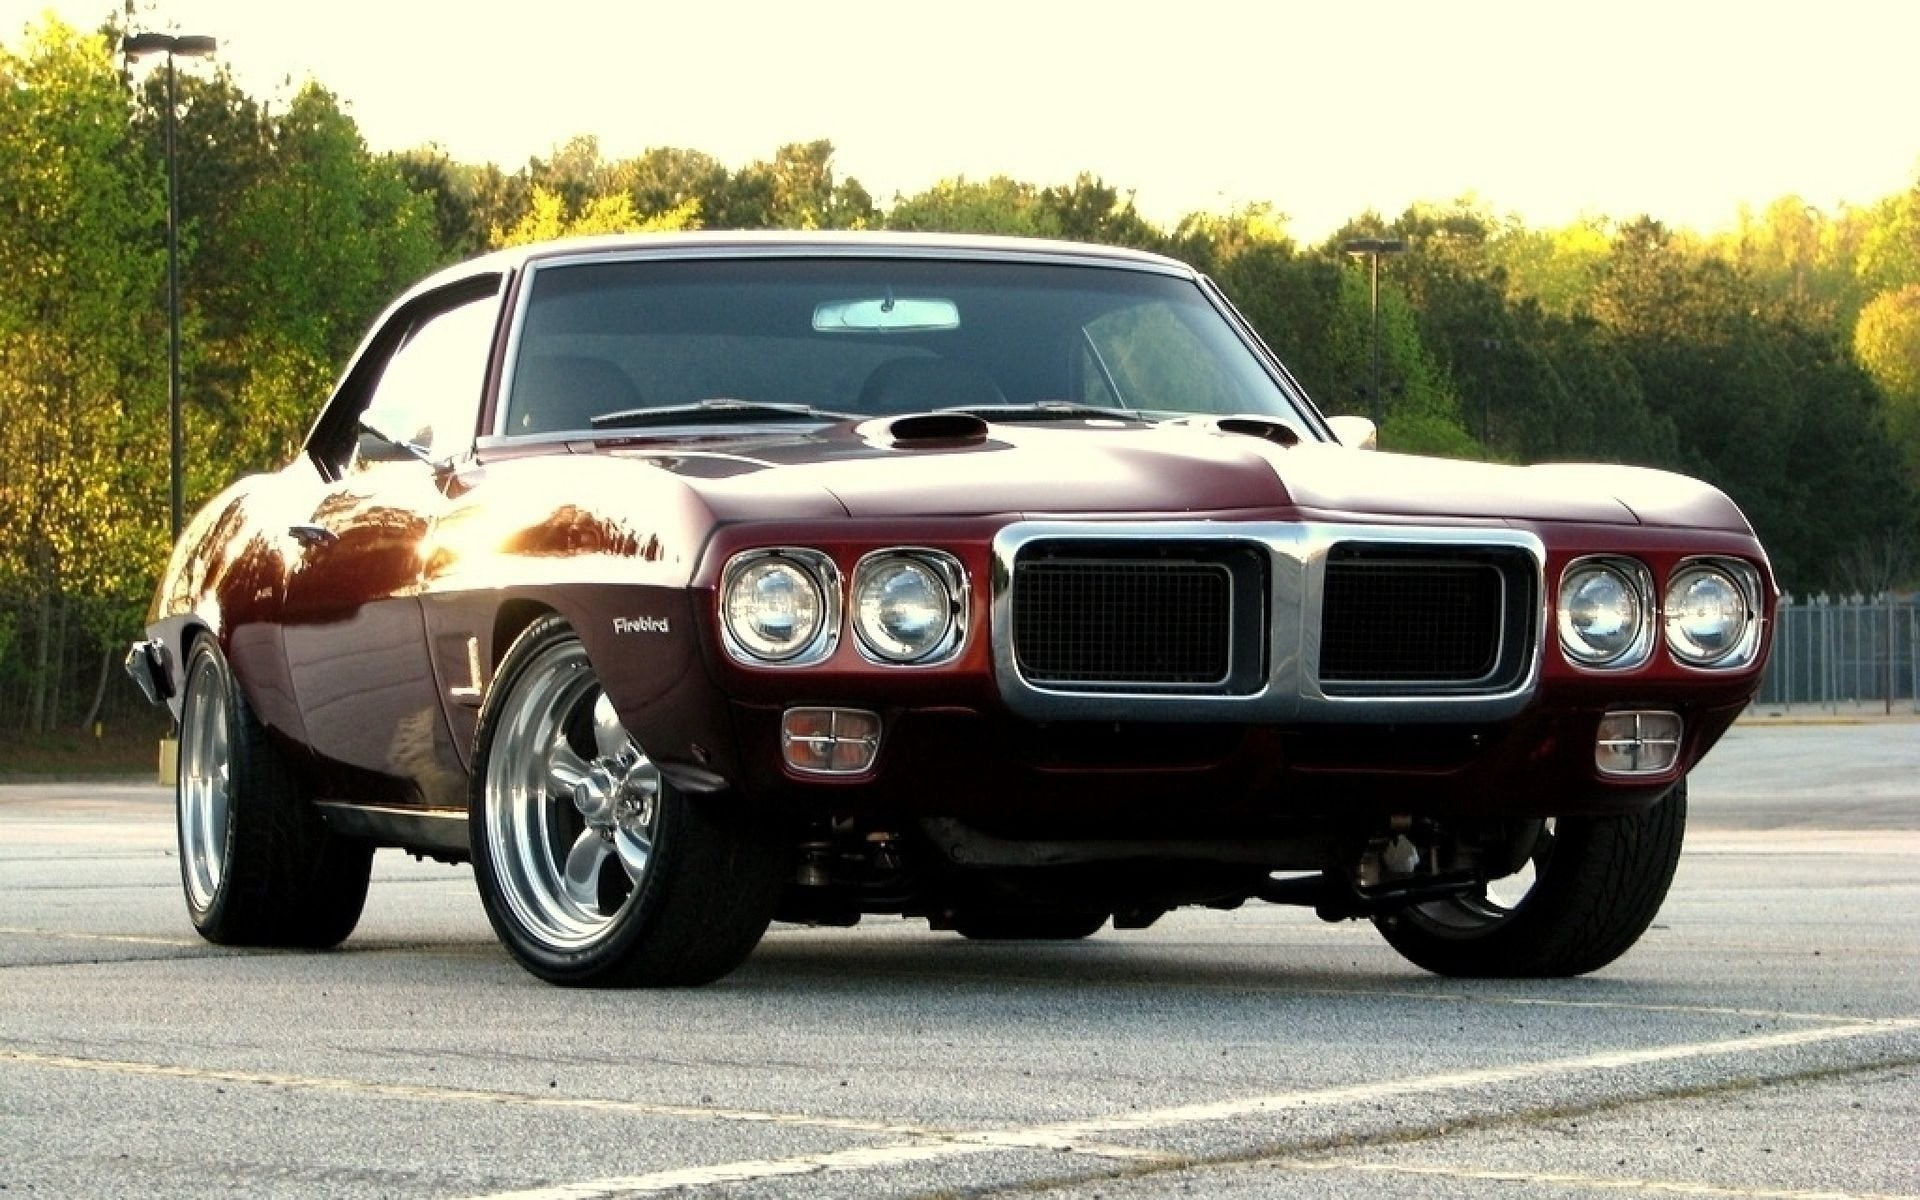 1920x1200 1969 Pontiac Firebird Autos Muskel wallpaper